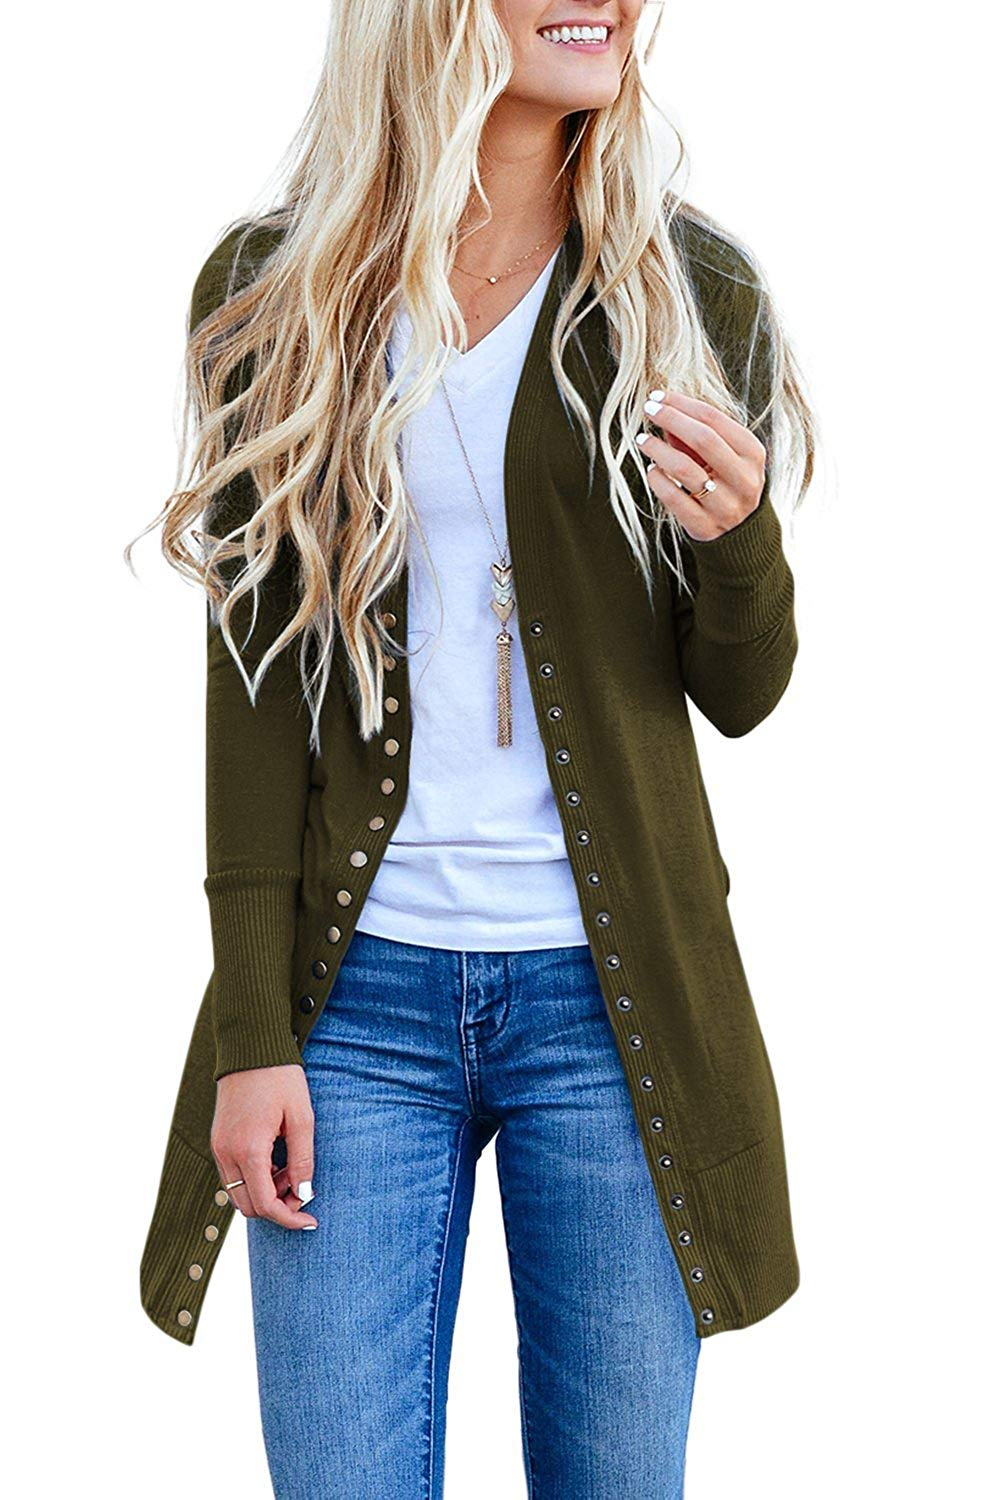 Snap Button Down Green Long Sleeve Knit Ribbed Her Fashion Cardigan